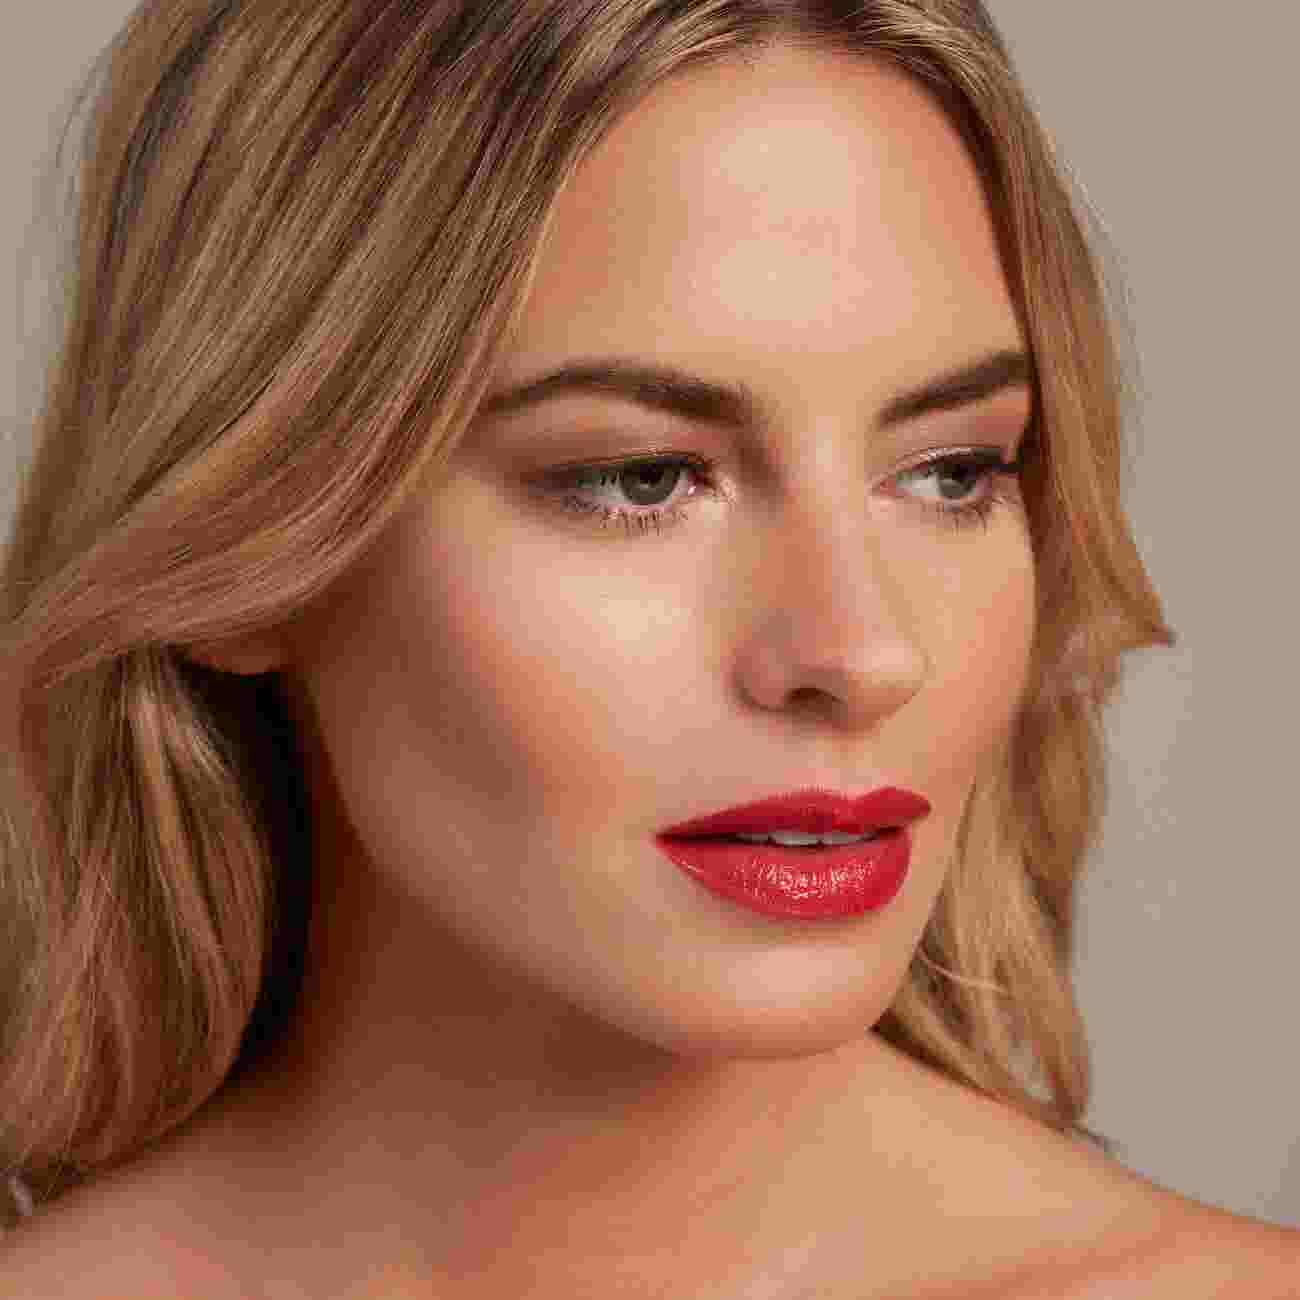 Model wearing Max Factor Colour Elixir Lip Cushion in Baby Star Coral